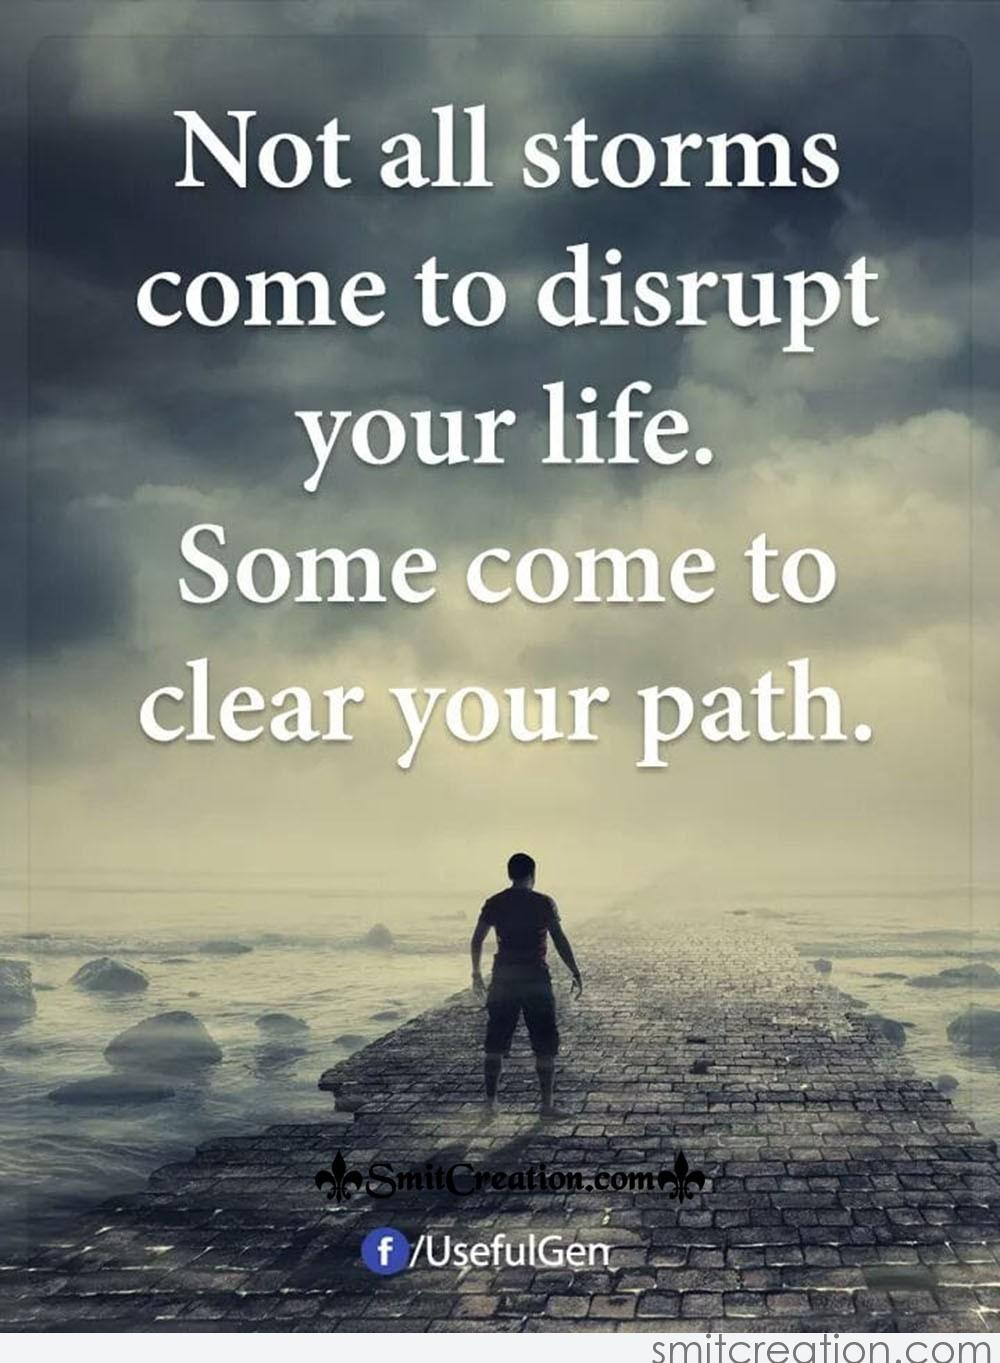 Not All Storms Come To Disrupt Your Life - SmitCreation.com